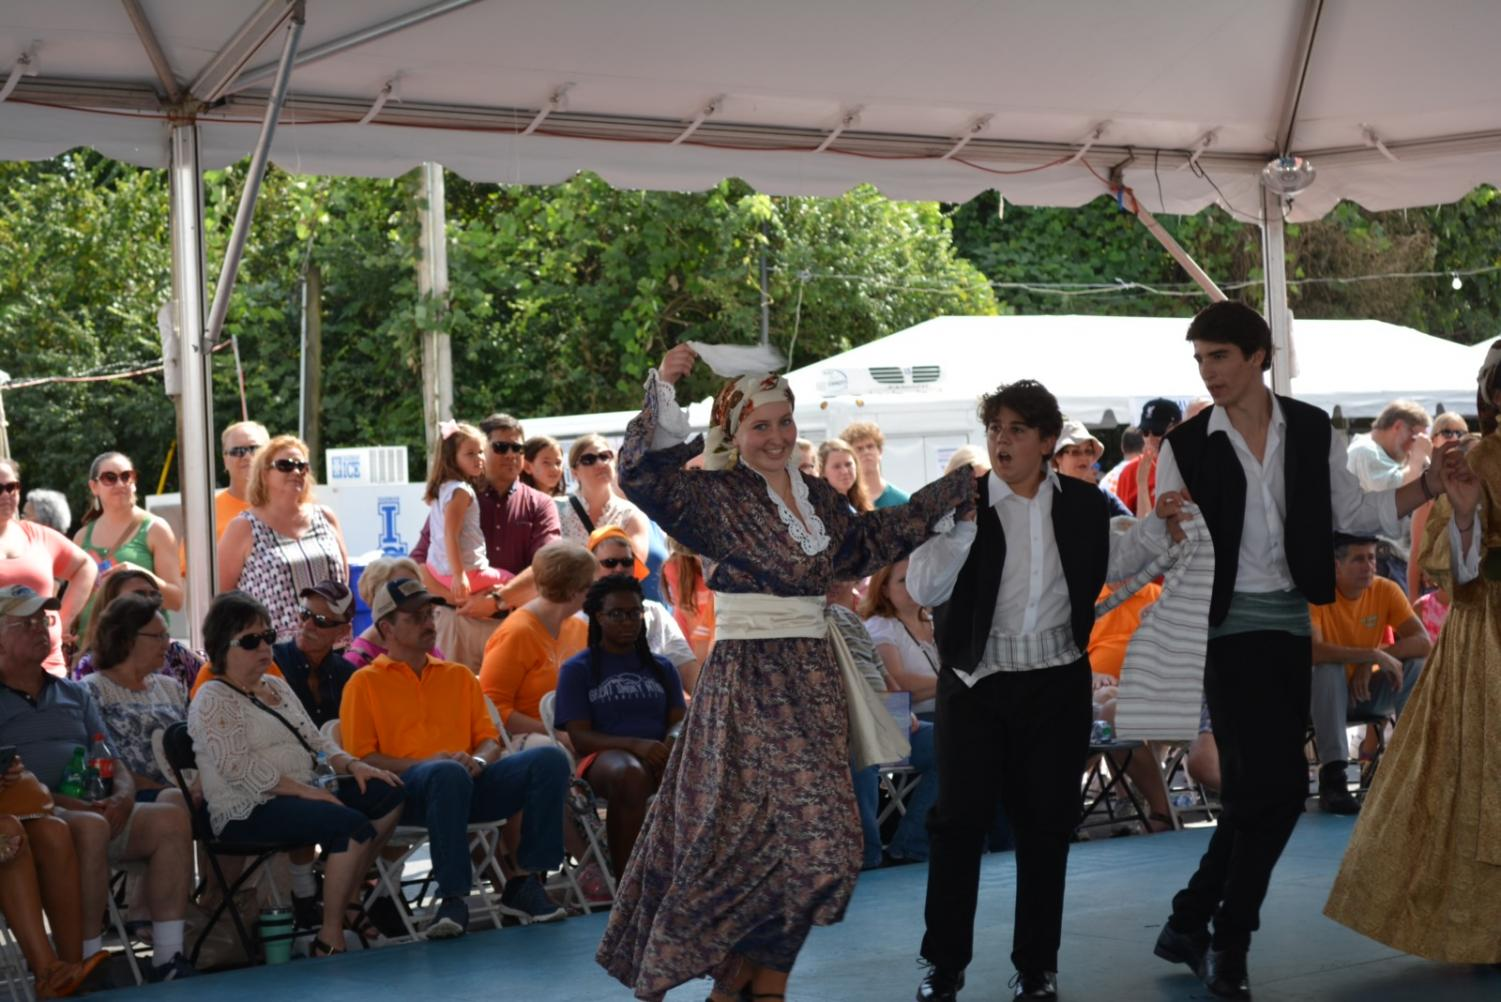 Bearden's Athena Marlar will dance at Greek Fest once again this year. The event starts Friday and runs throughout the weekend.